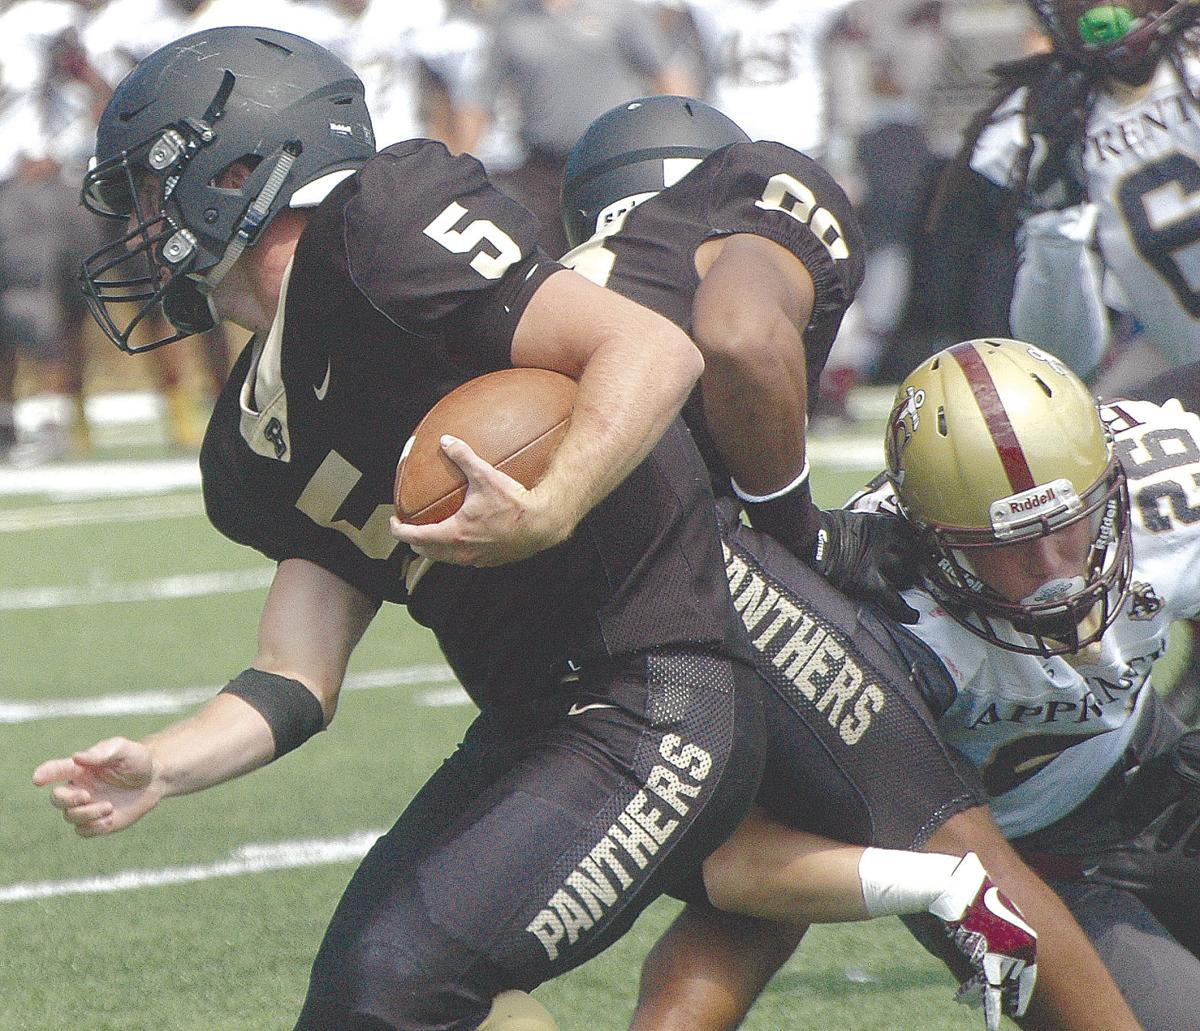 Ferrum college sophomore running back returnman brian mann 5 uses a block from a teammate to break free of a would be apprentice school tackler during the